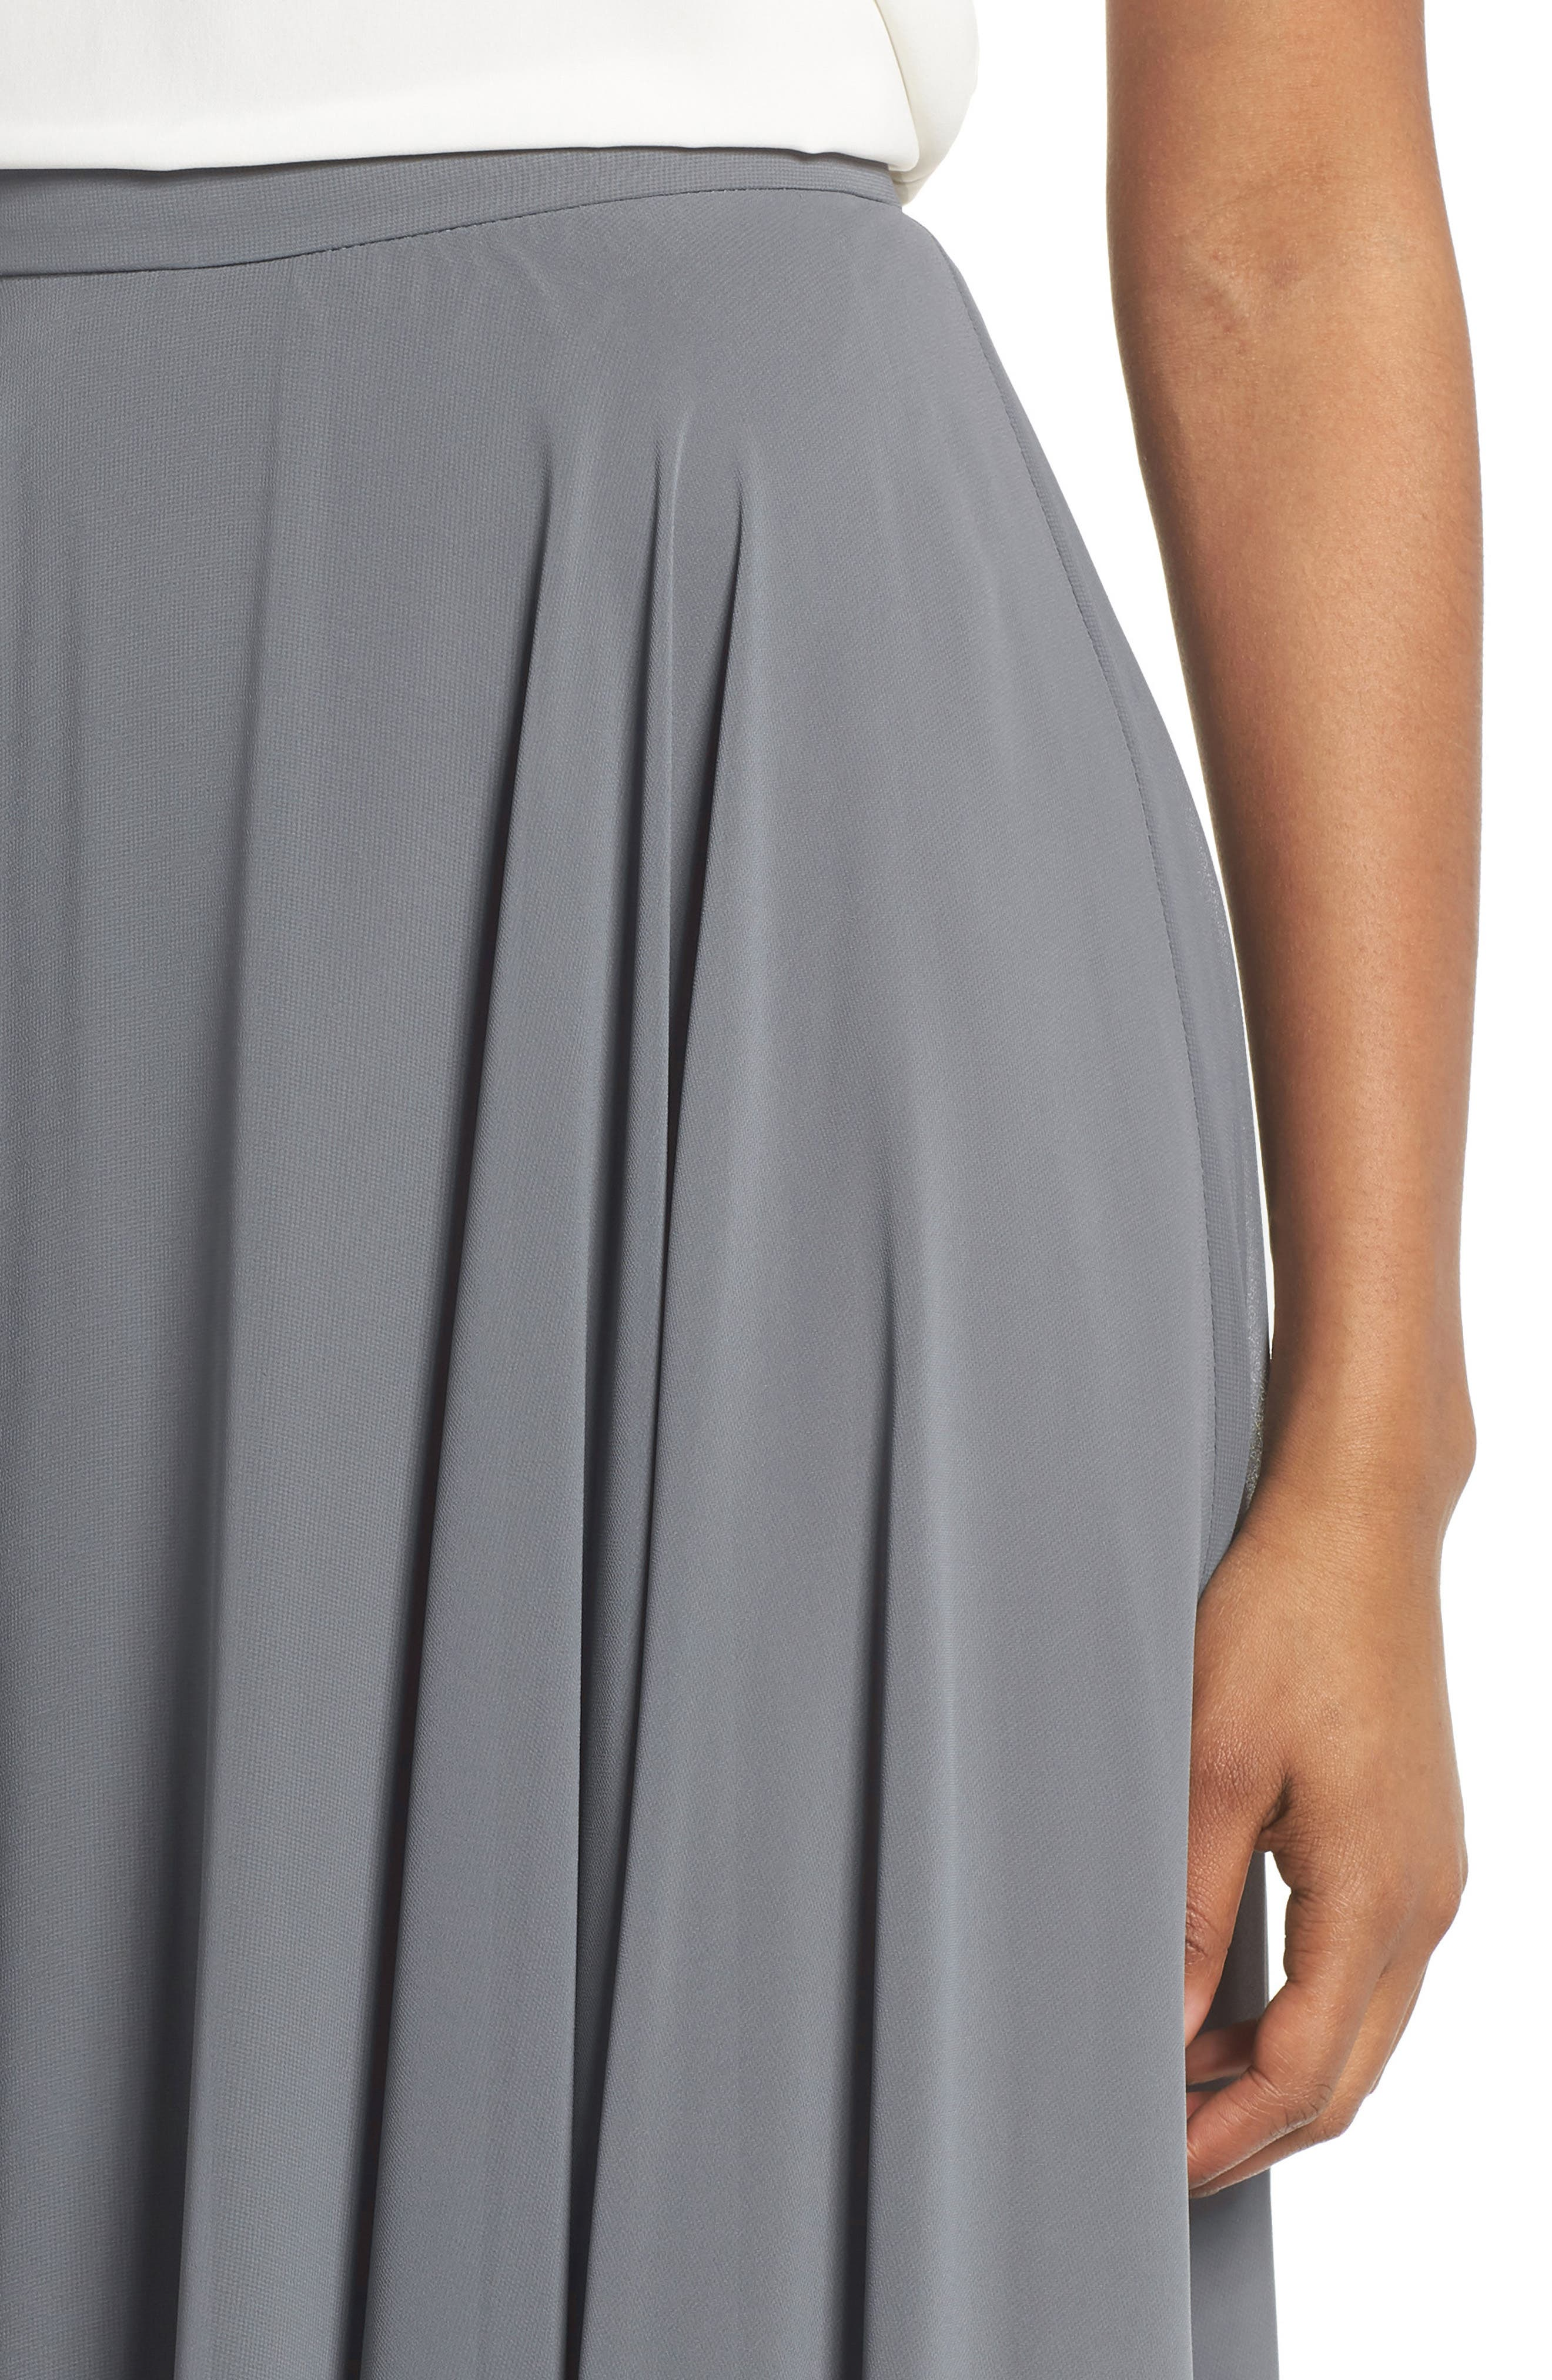 Hampton Long A-Line Chiffon Skirt,                             Alternate thumbnail 4, color,                             DENMARK BLUE